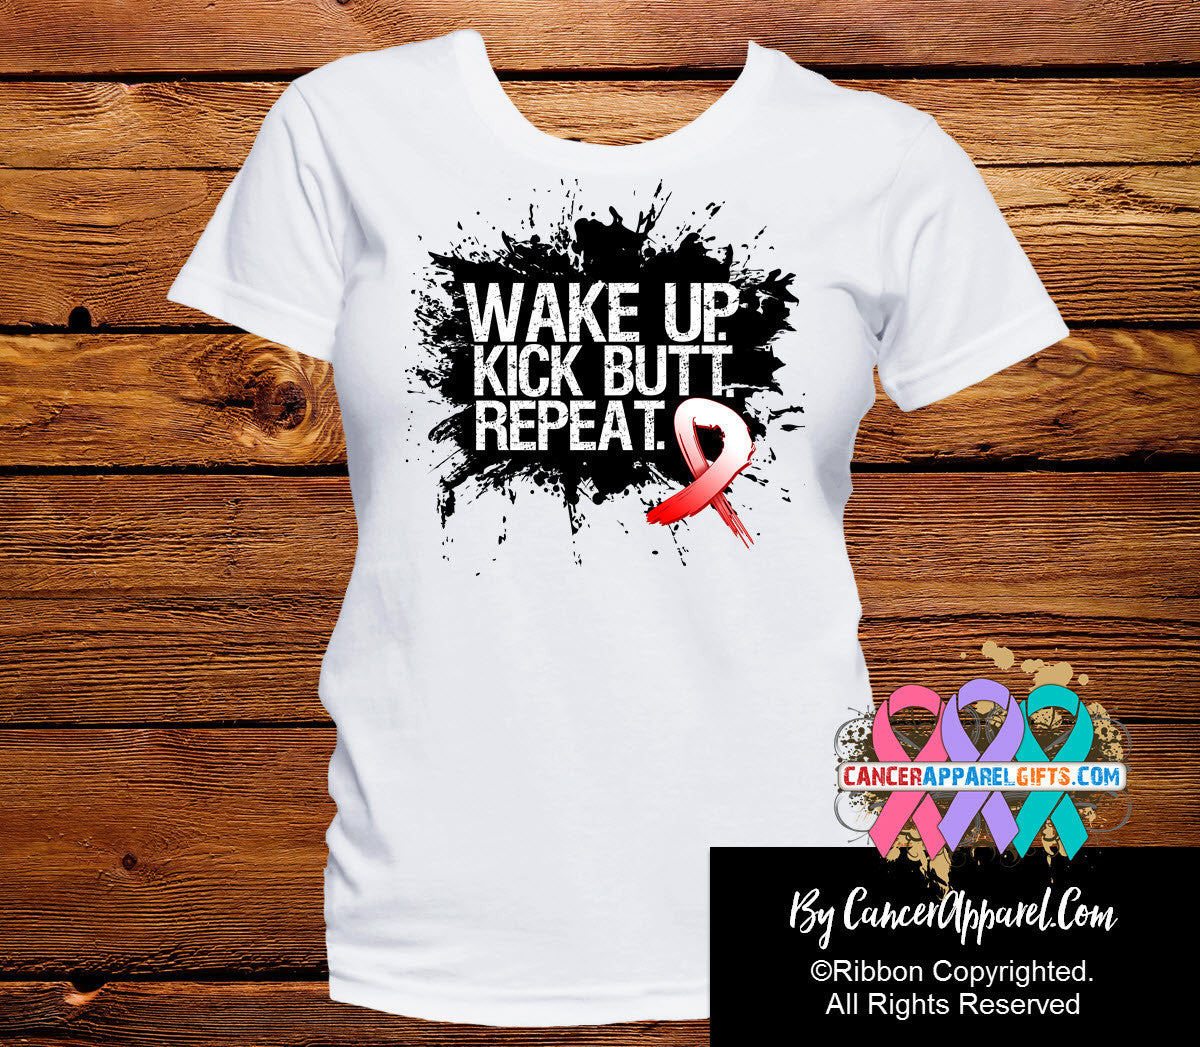 Oral Cancer Shirts Wake Up Kick Butt and Repeat